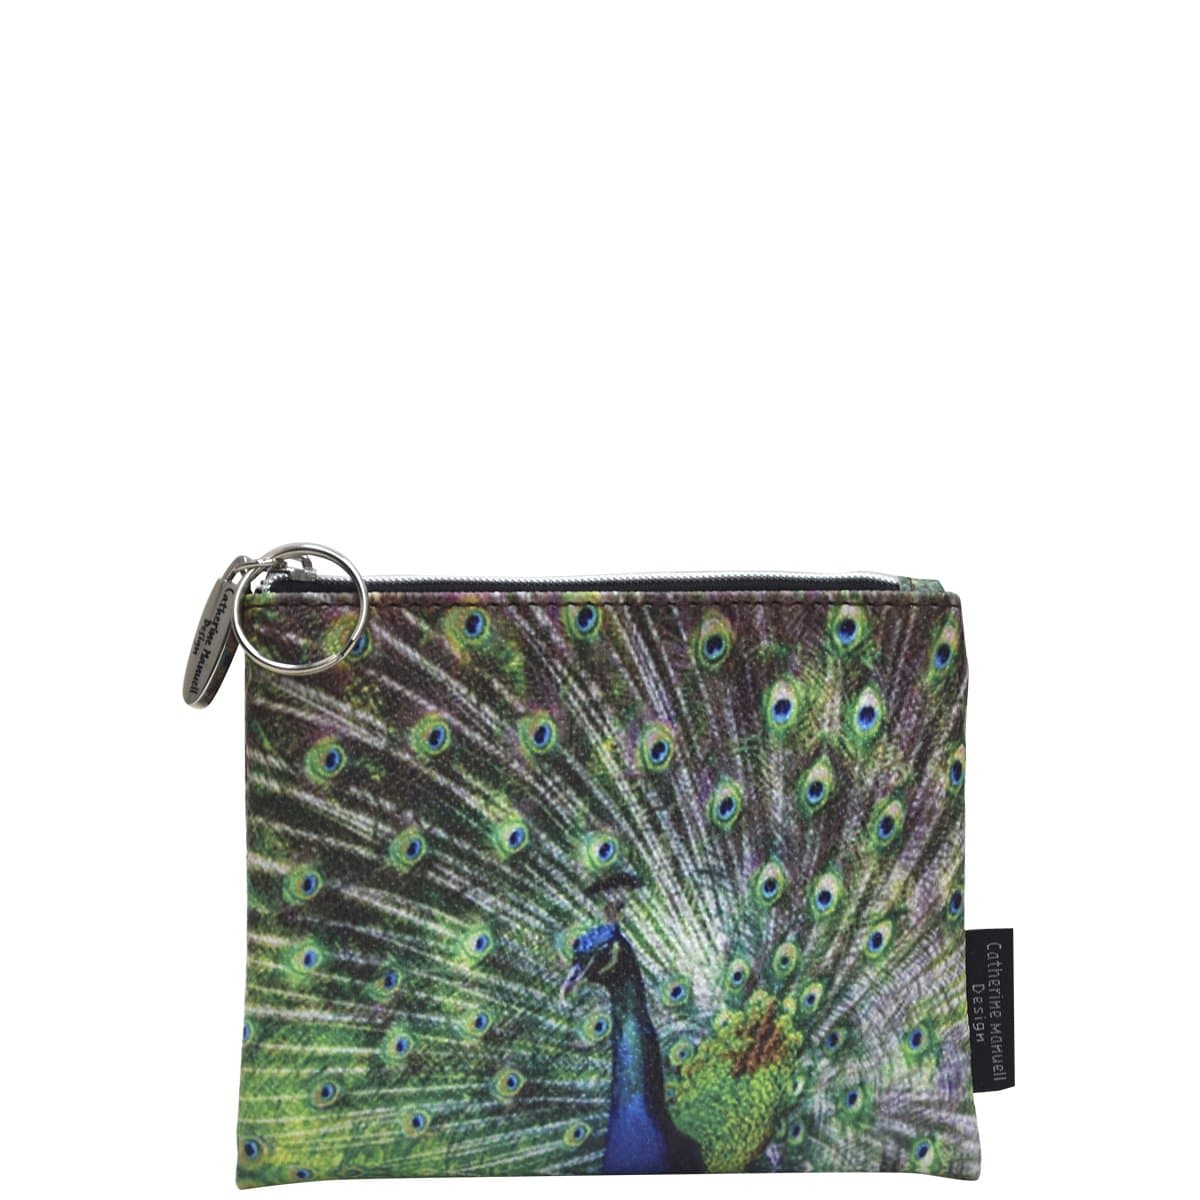 Everyday Purse - Peacock